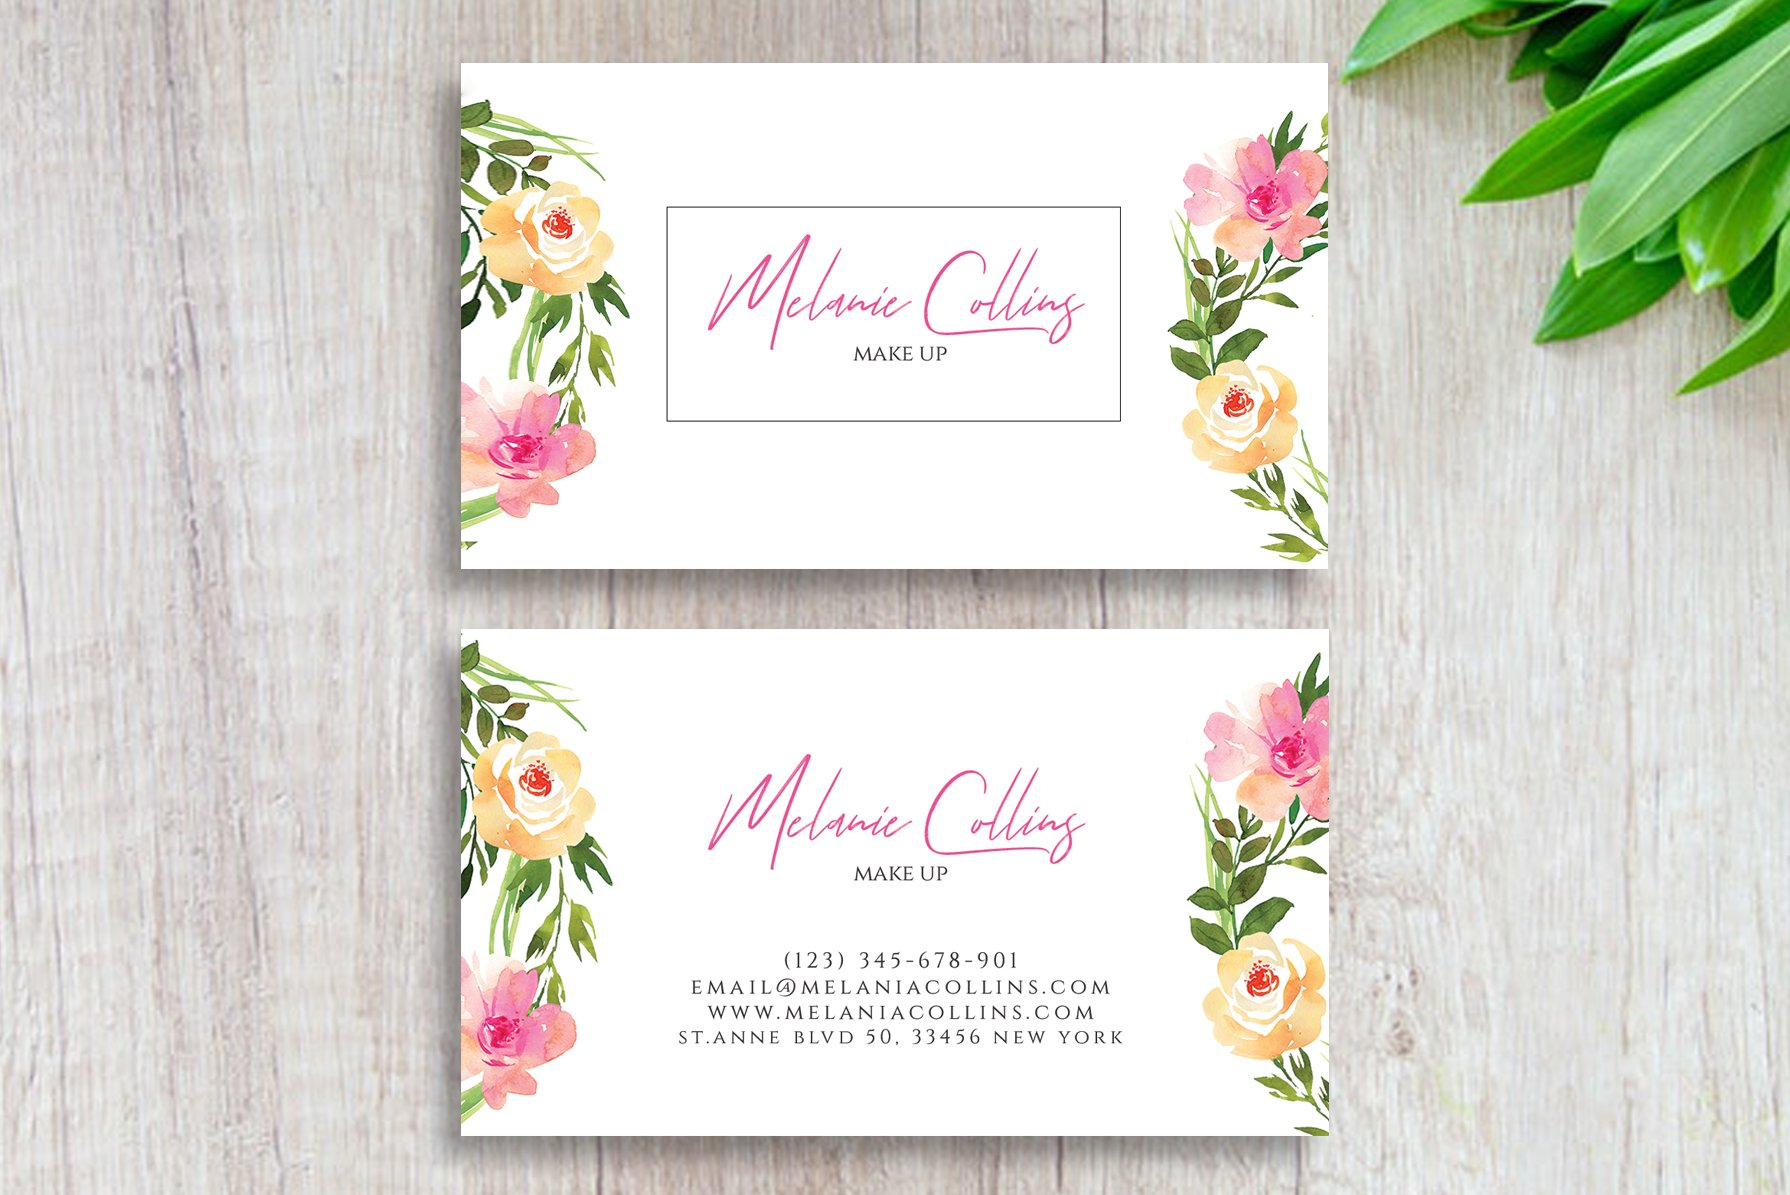 floral business card template  creative business card